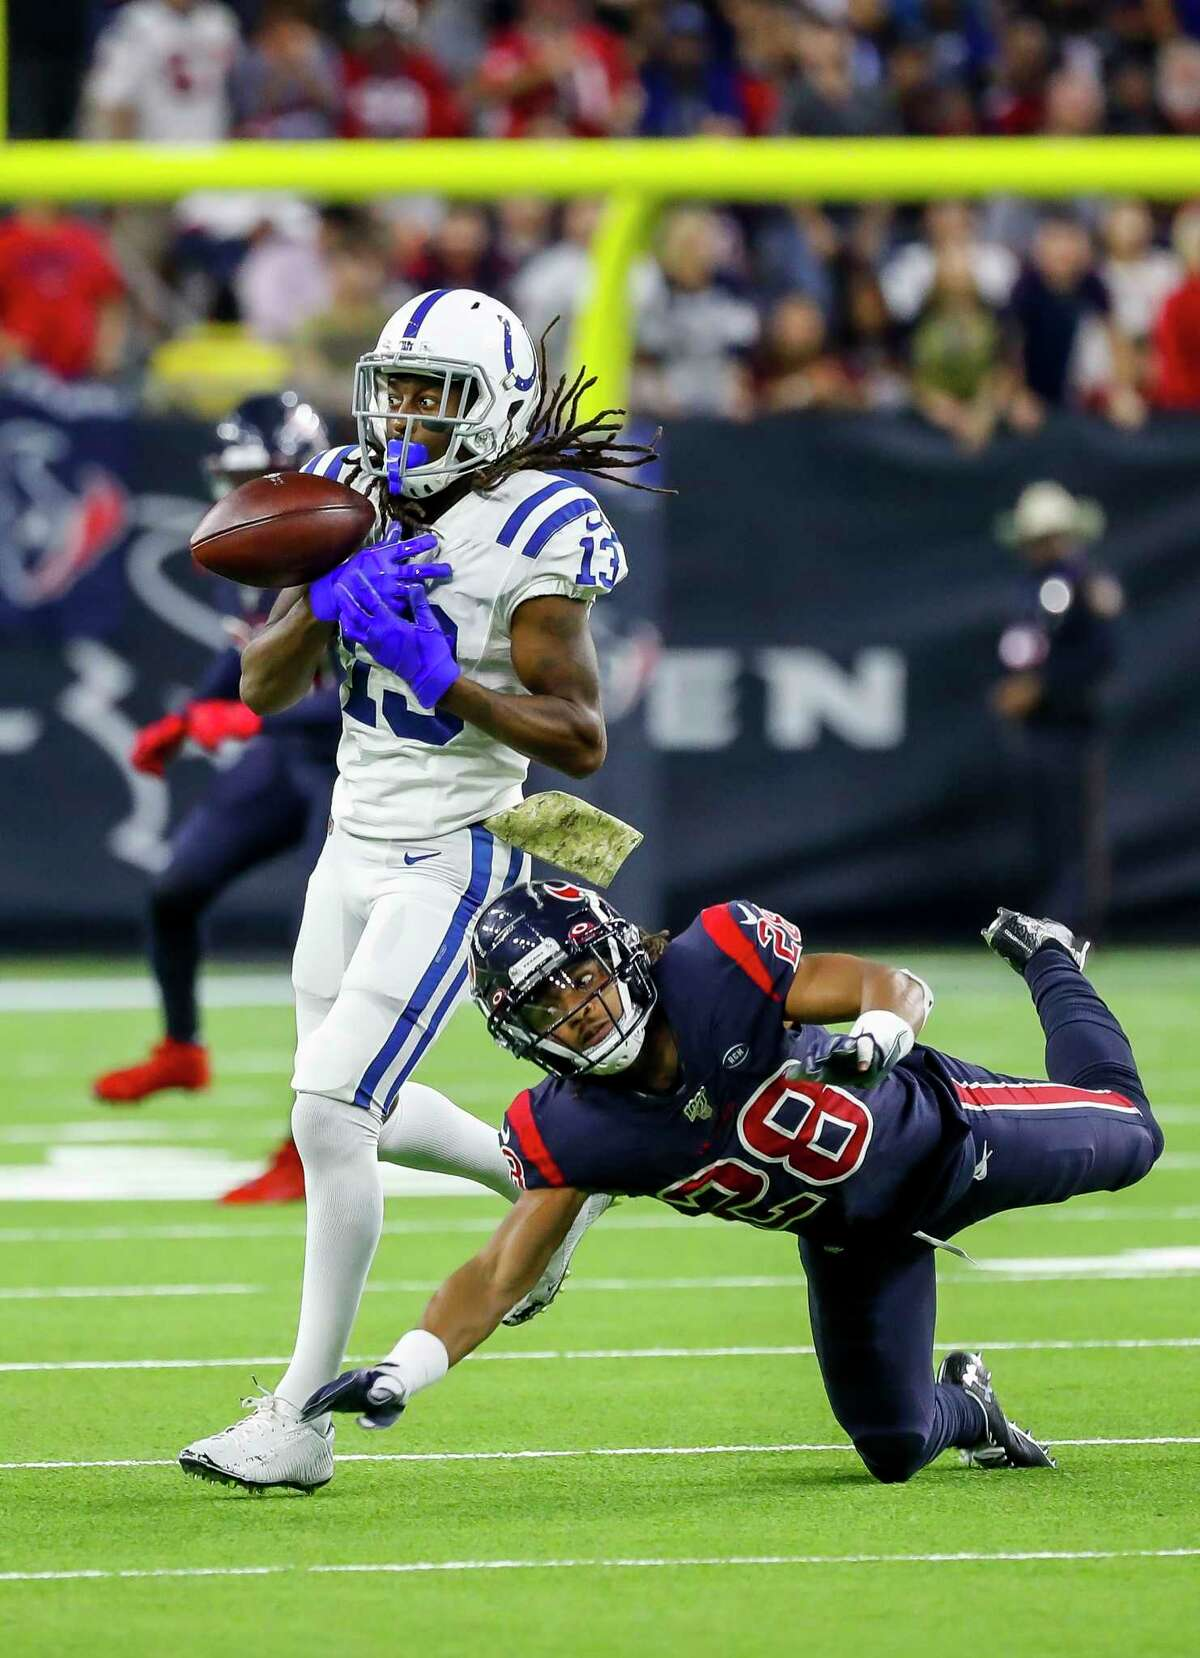 Indianapolis Colts wide receiver T.Y. Hilton (13) can not hold onto a pass from Indianapolis Colts quarterback Jacoby Brissett (7) through coverage by Houston Texans cornerback Vernon III Hargreaves (28) during the third quarter of an NFL football game at NRG Stadium, Thursday, Nov. 21, 2019, in Houston.